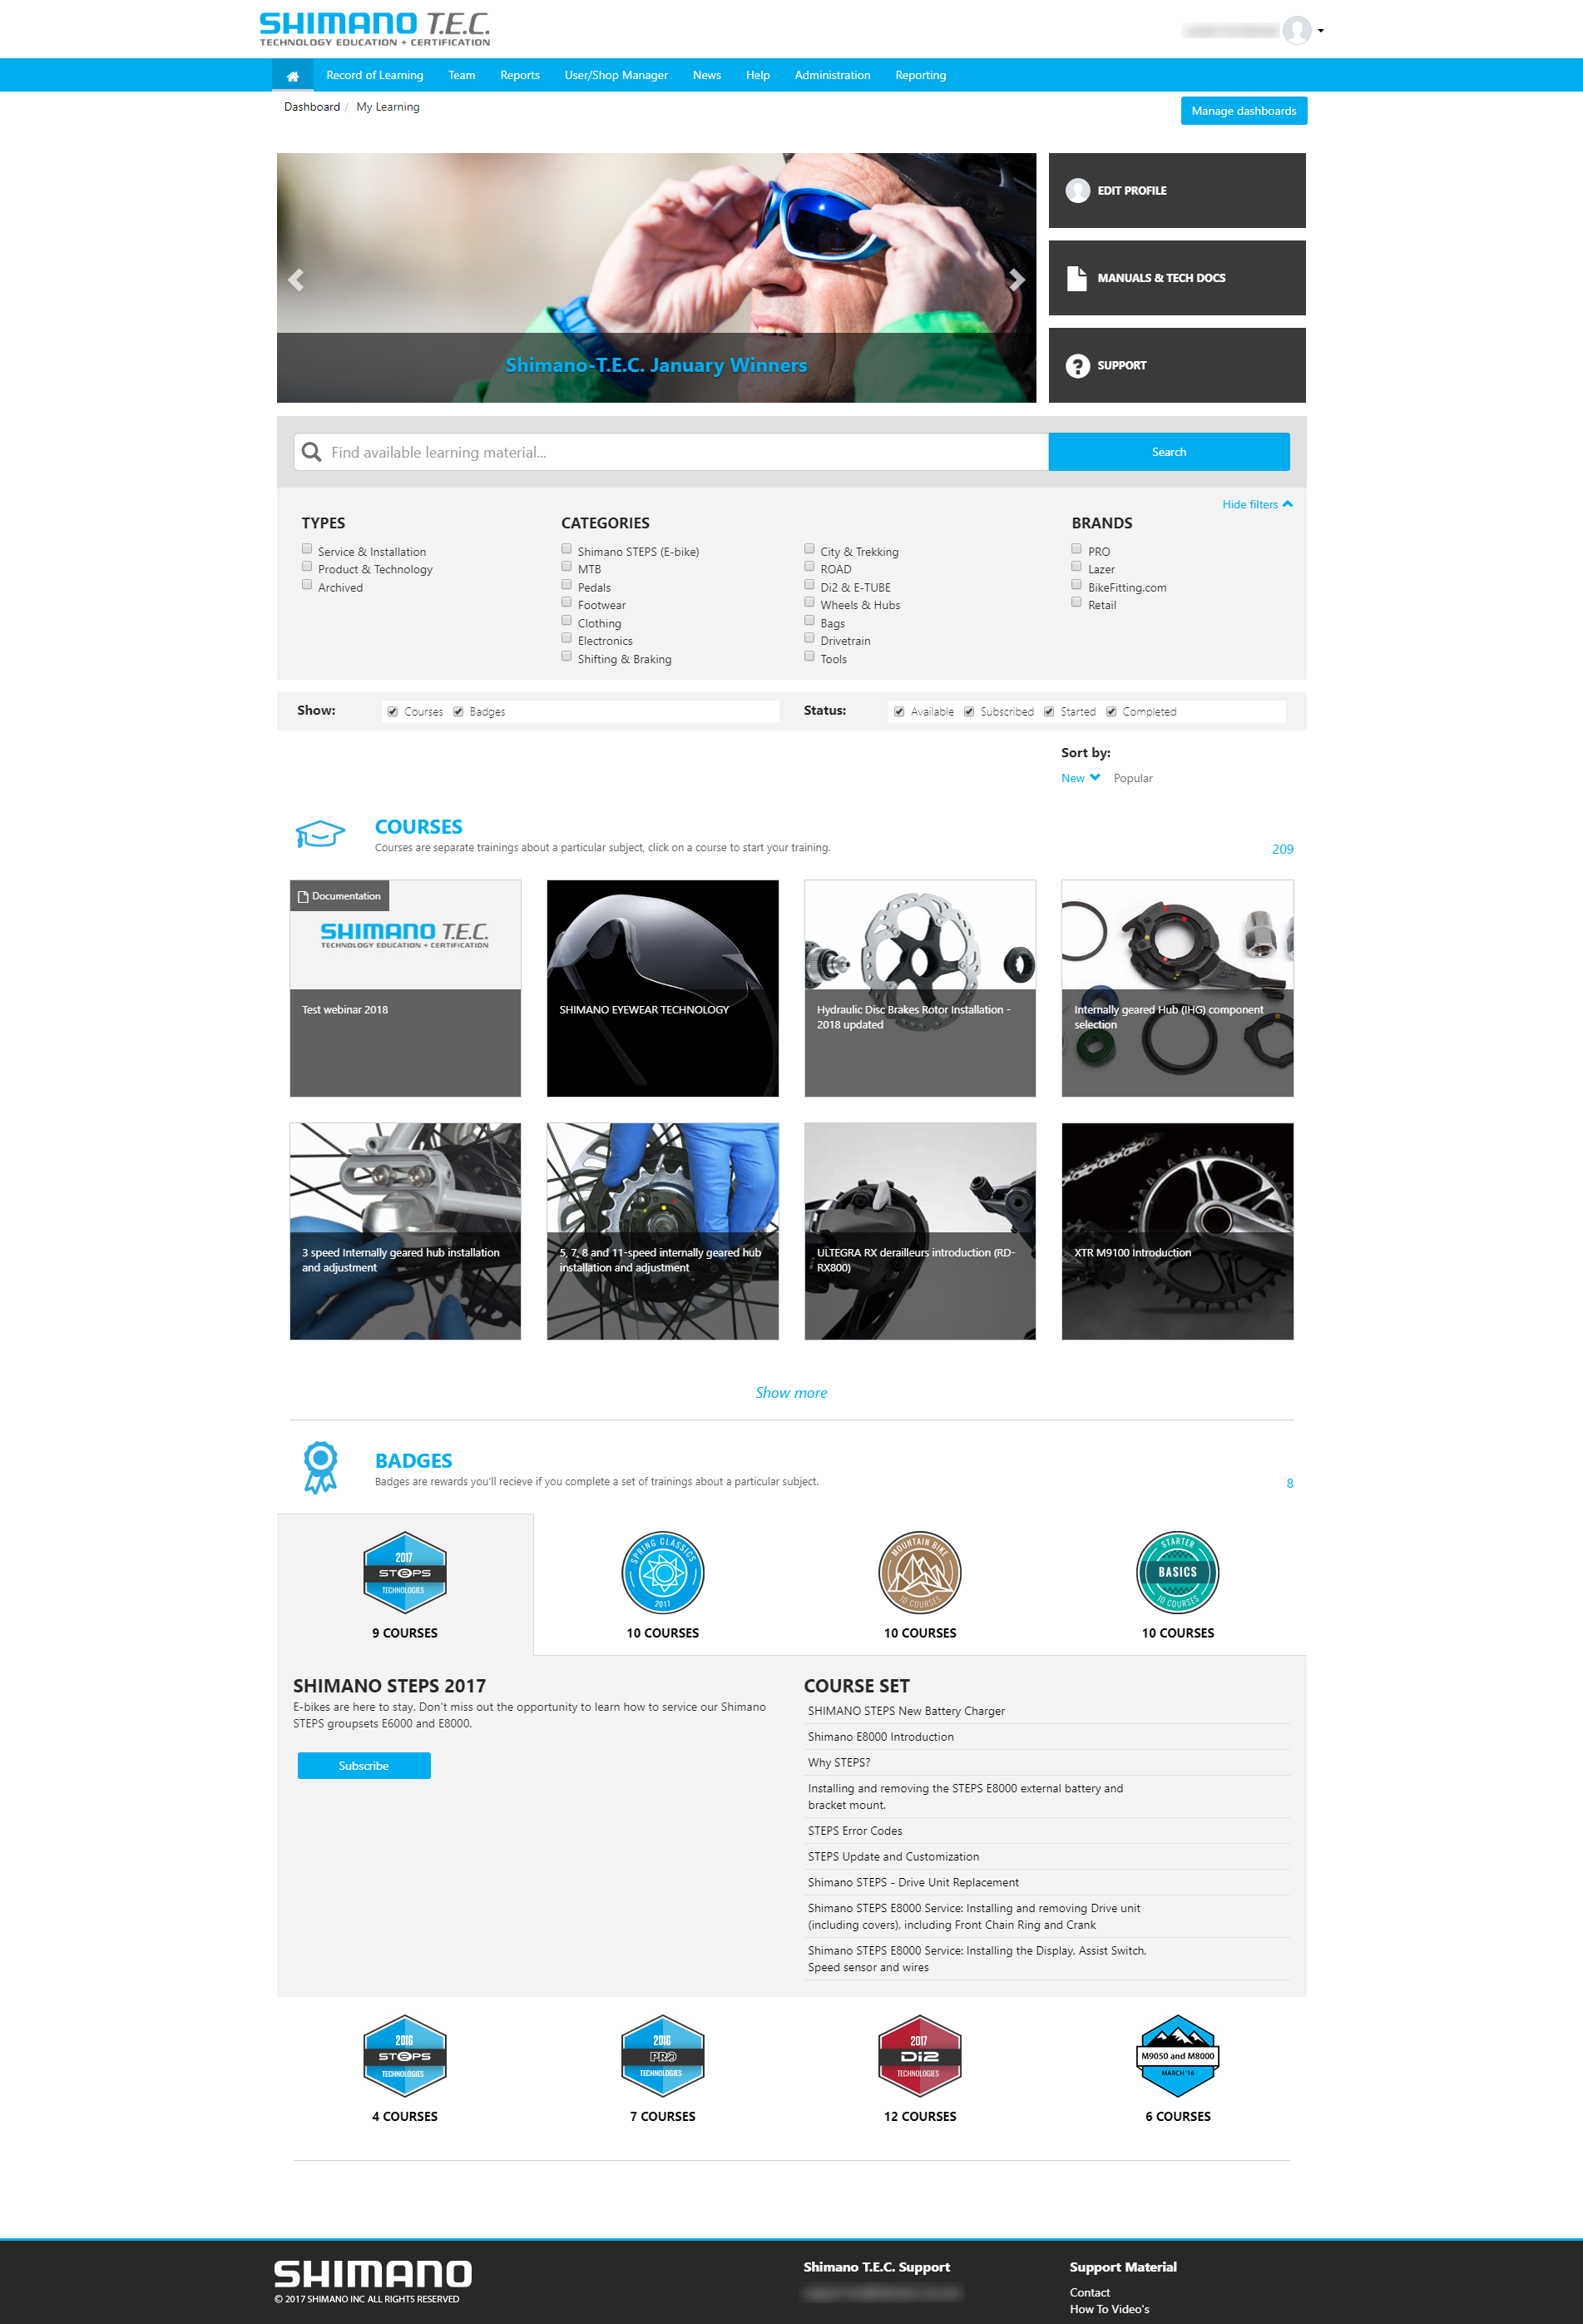 Shimano customer story screenshot